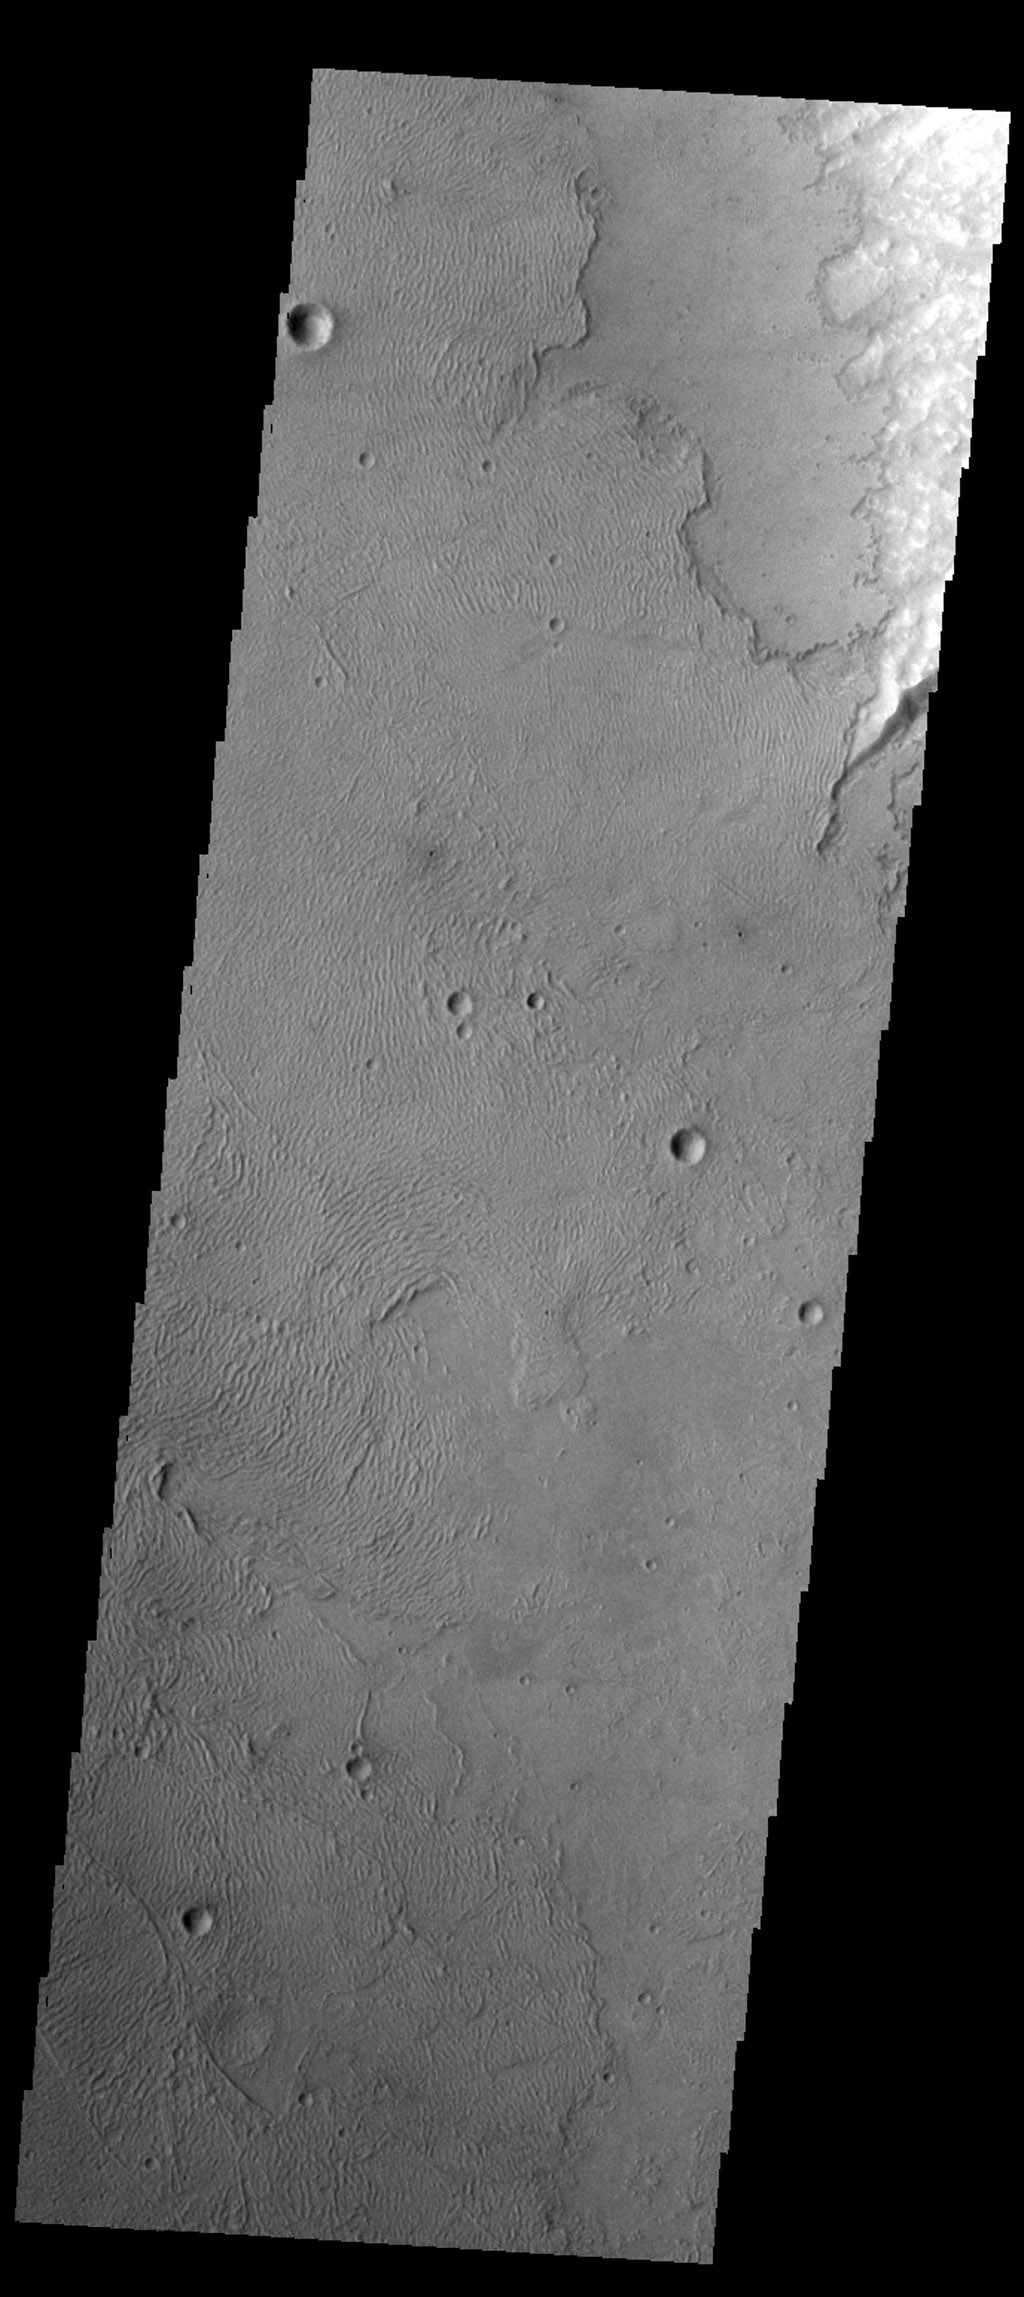 The volcanic flows in this image from NASA's Mars Odyssey spacecraft are at the far southwestern margin of Daedalia Planum. Notice the different appearance of this dunes compared to yesterday's image.